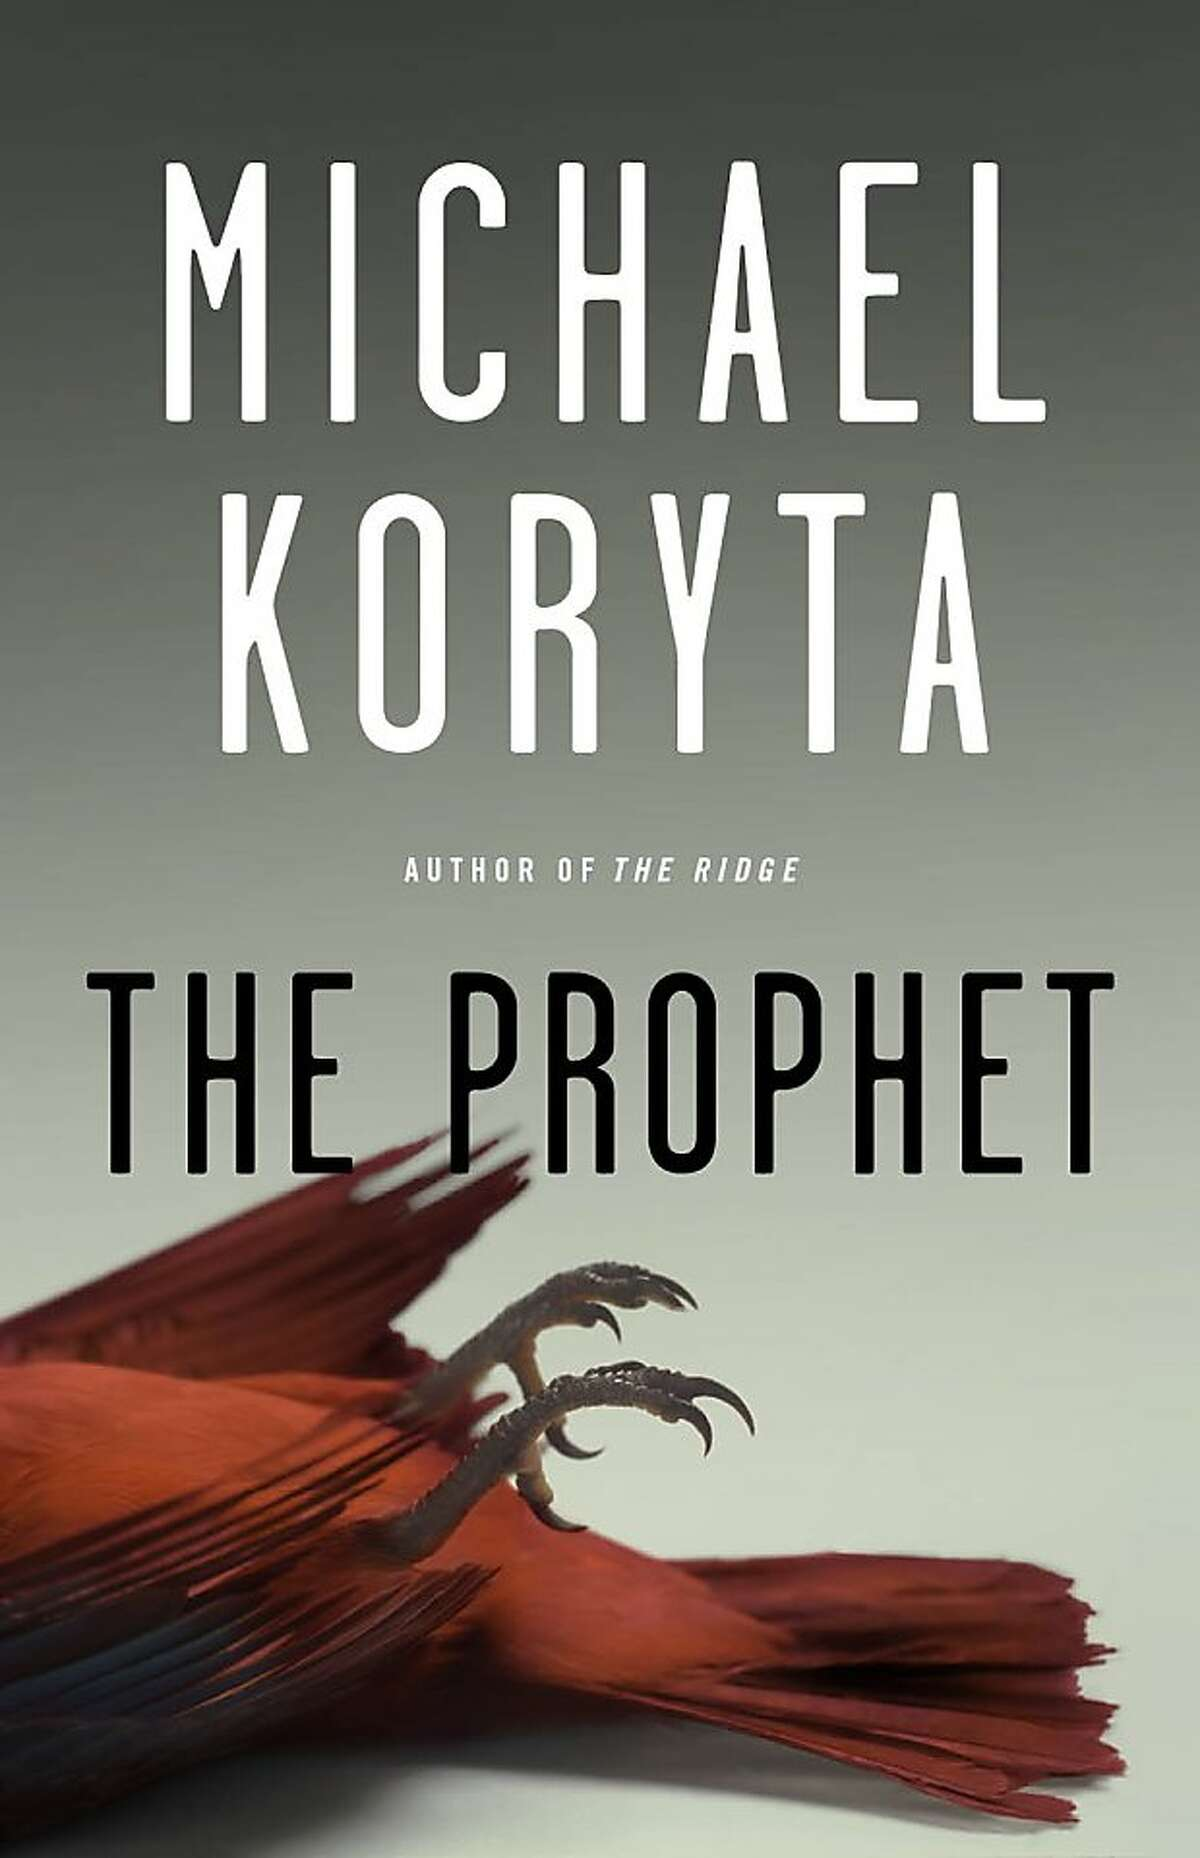 The Prophet, by Michael Koryta